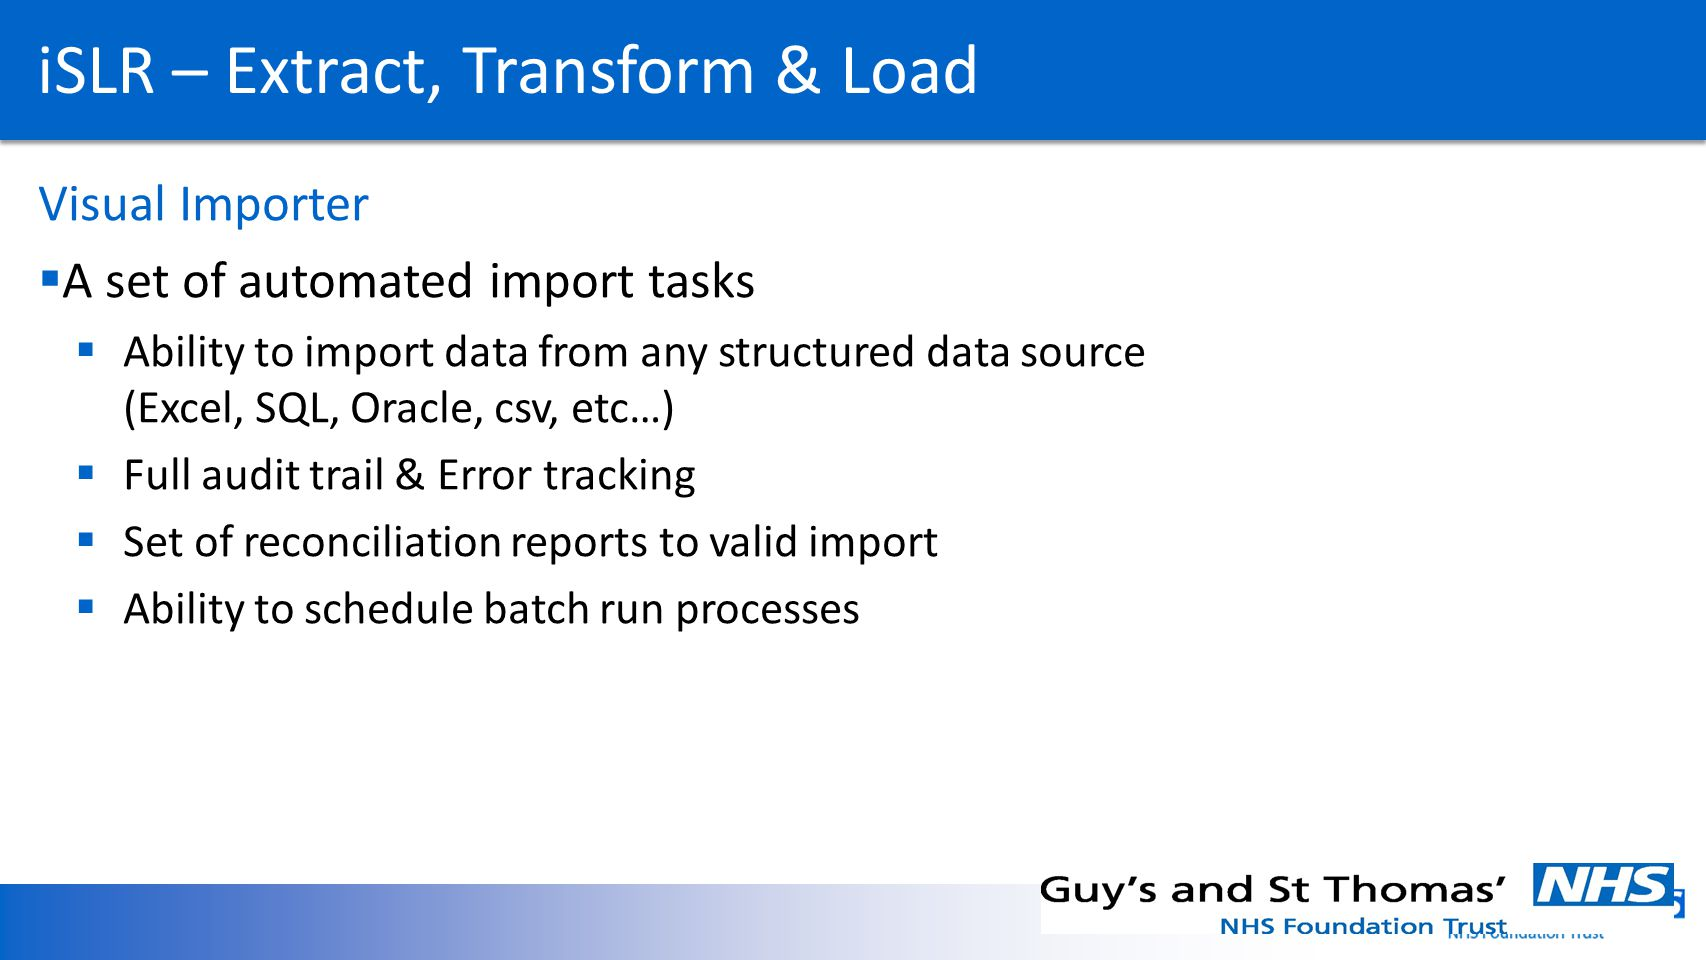 iSLR – Extract, Transform & Load Visual Importer A set of automated import tasks Ability to import data from any structured data source (Excel, SQL, Oracle, csv, etc…) Full audit trail & Error tracking Set of reconciliation reports to valid import Ability to schedule batch run processes